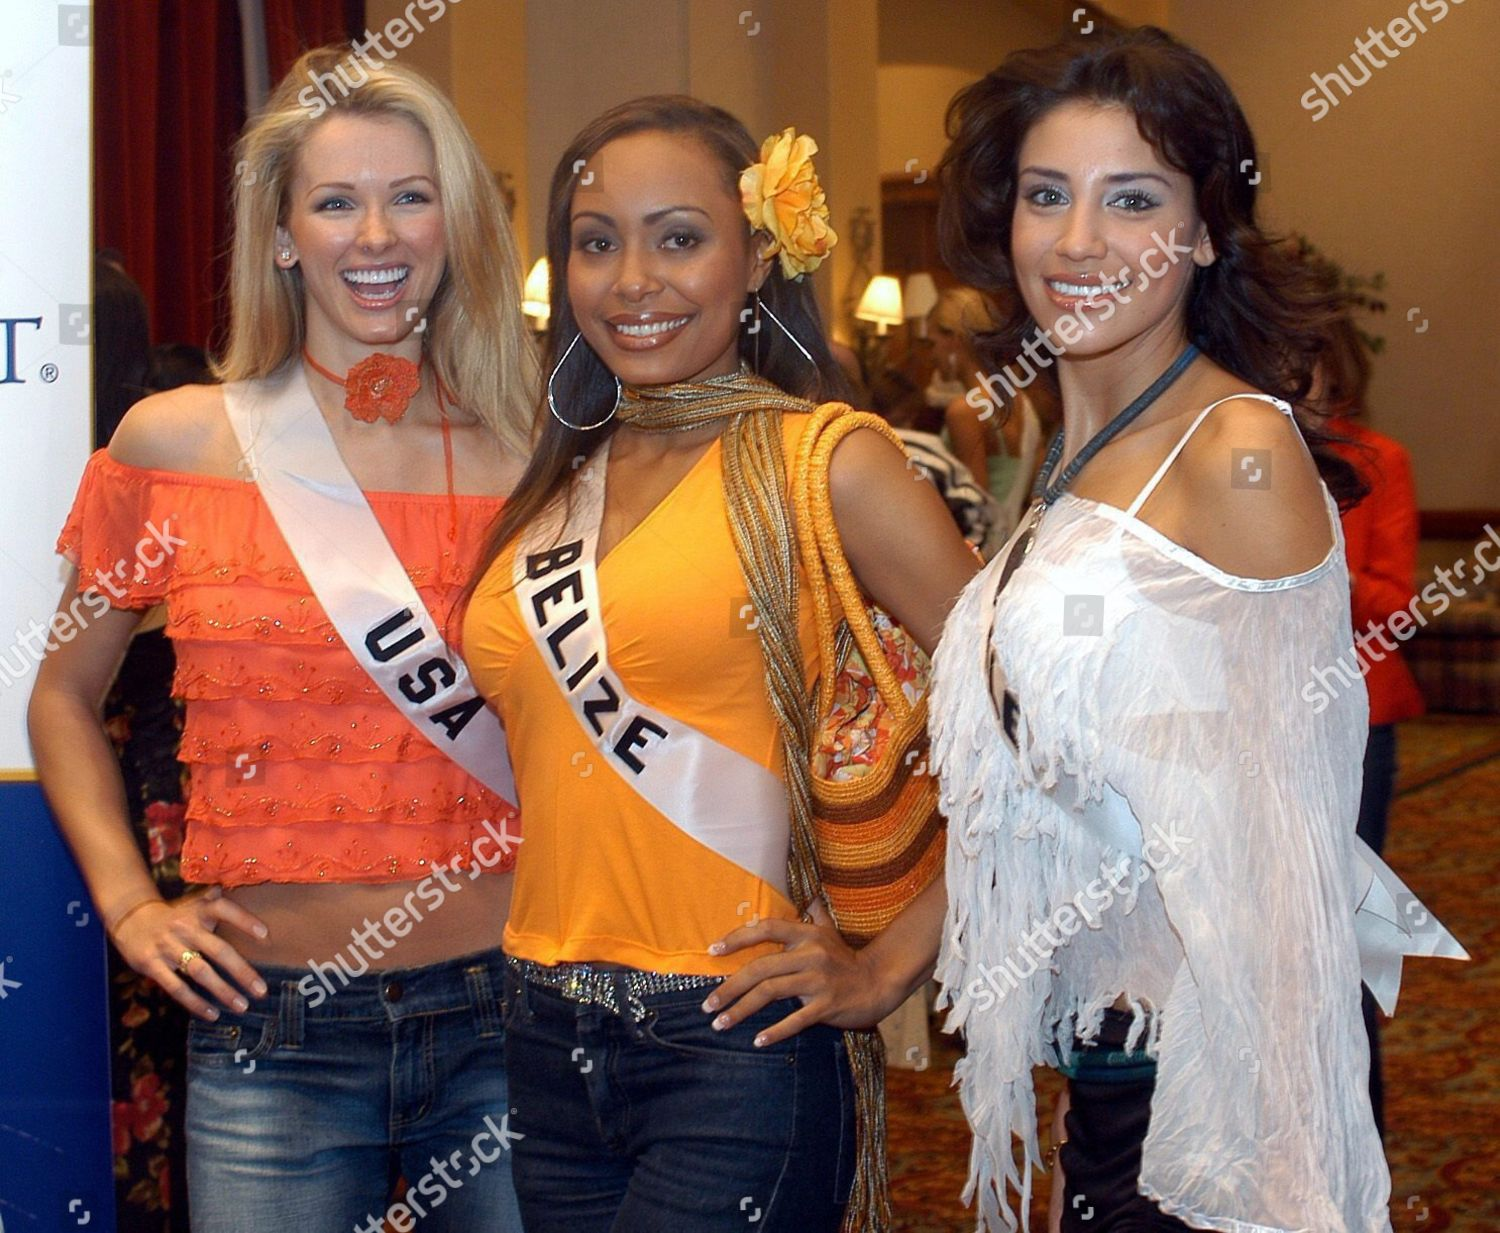 ecuador-miss-universe-may-2004-shutterst